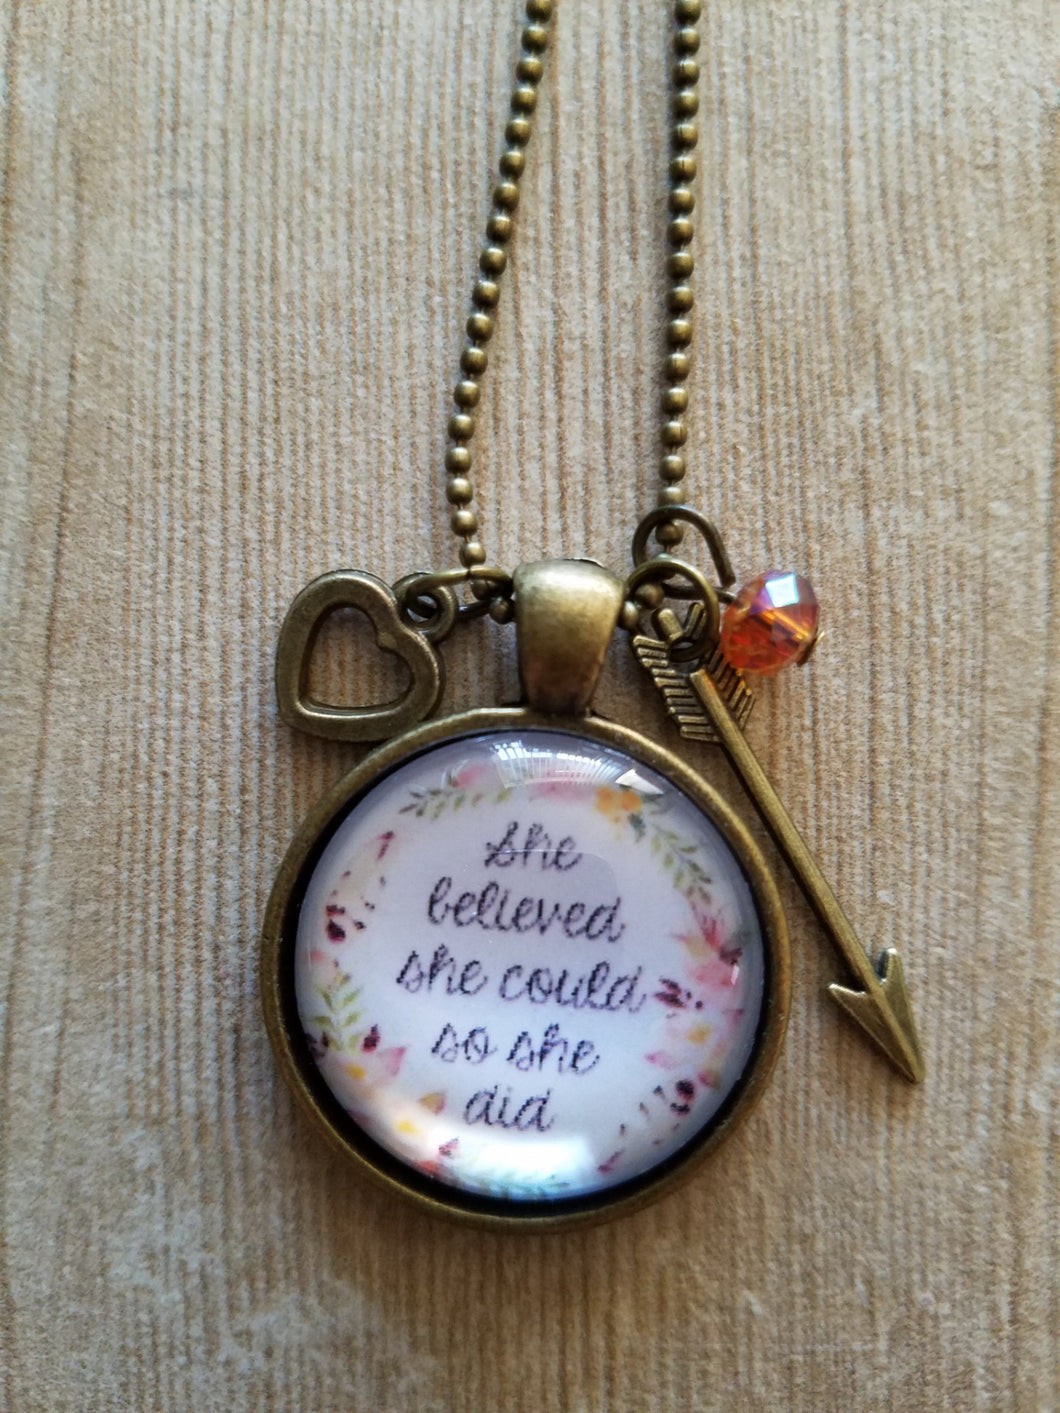 She Believed She Could - Vintage 1